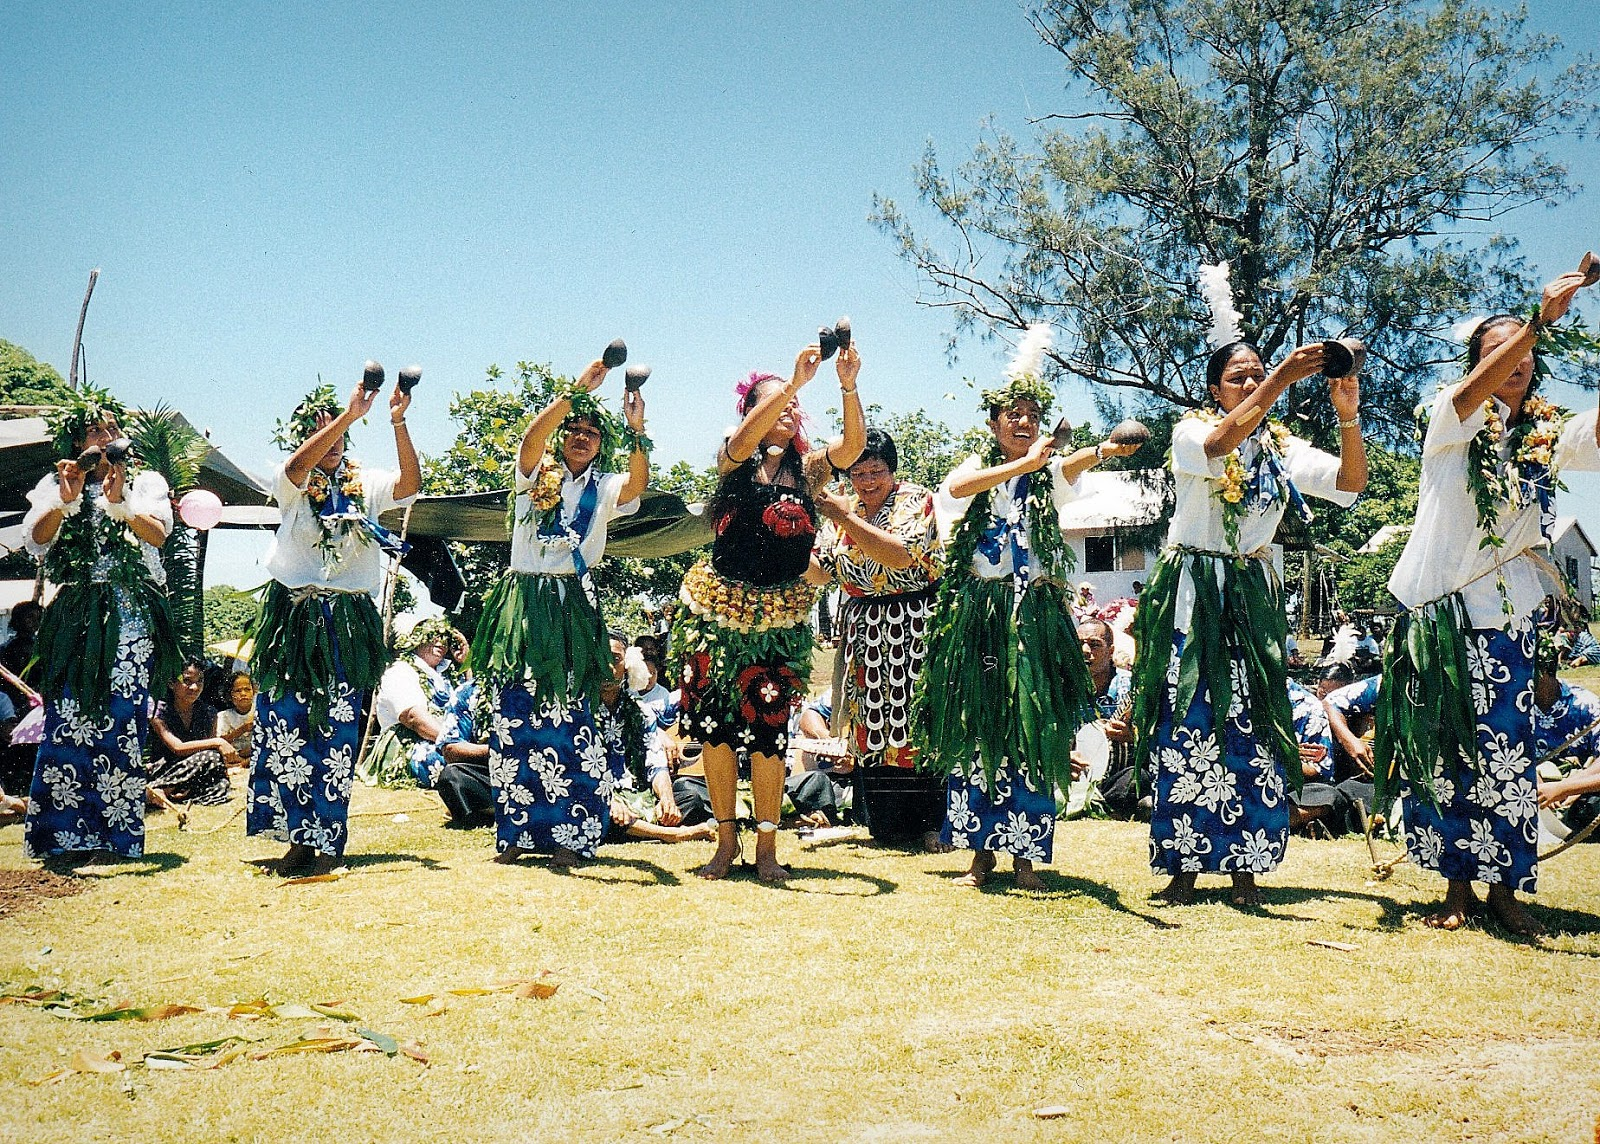 At this Tongan feast, there was also dancing for the birthday celebrations